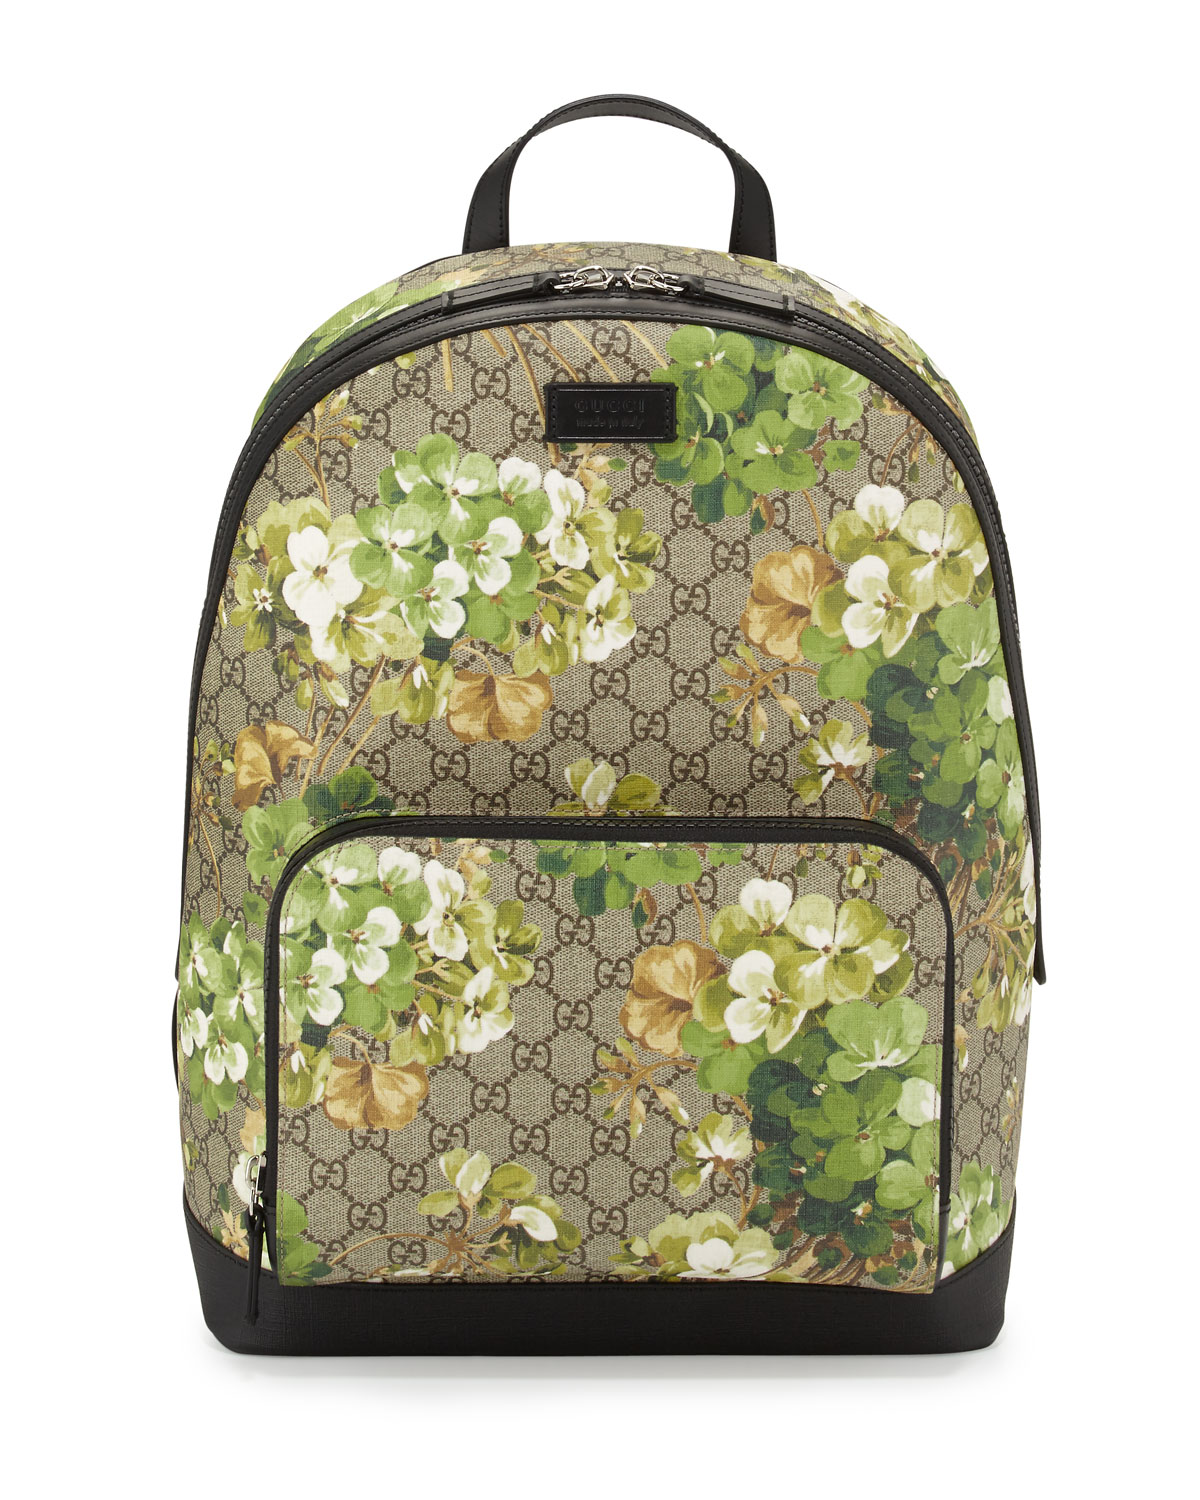 3366687abdbad8 Gucci GG Blooms Canvas Backpack, Multi | Neiman Marcus